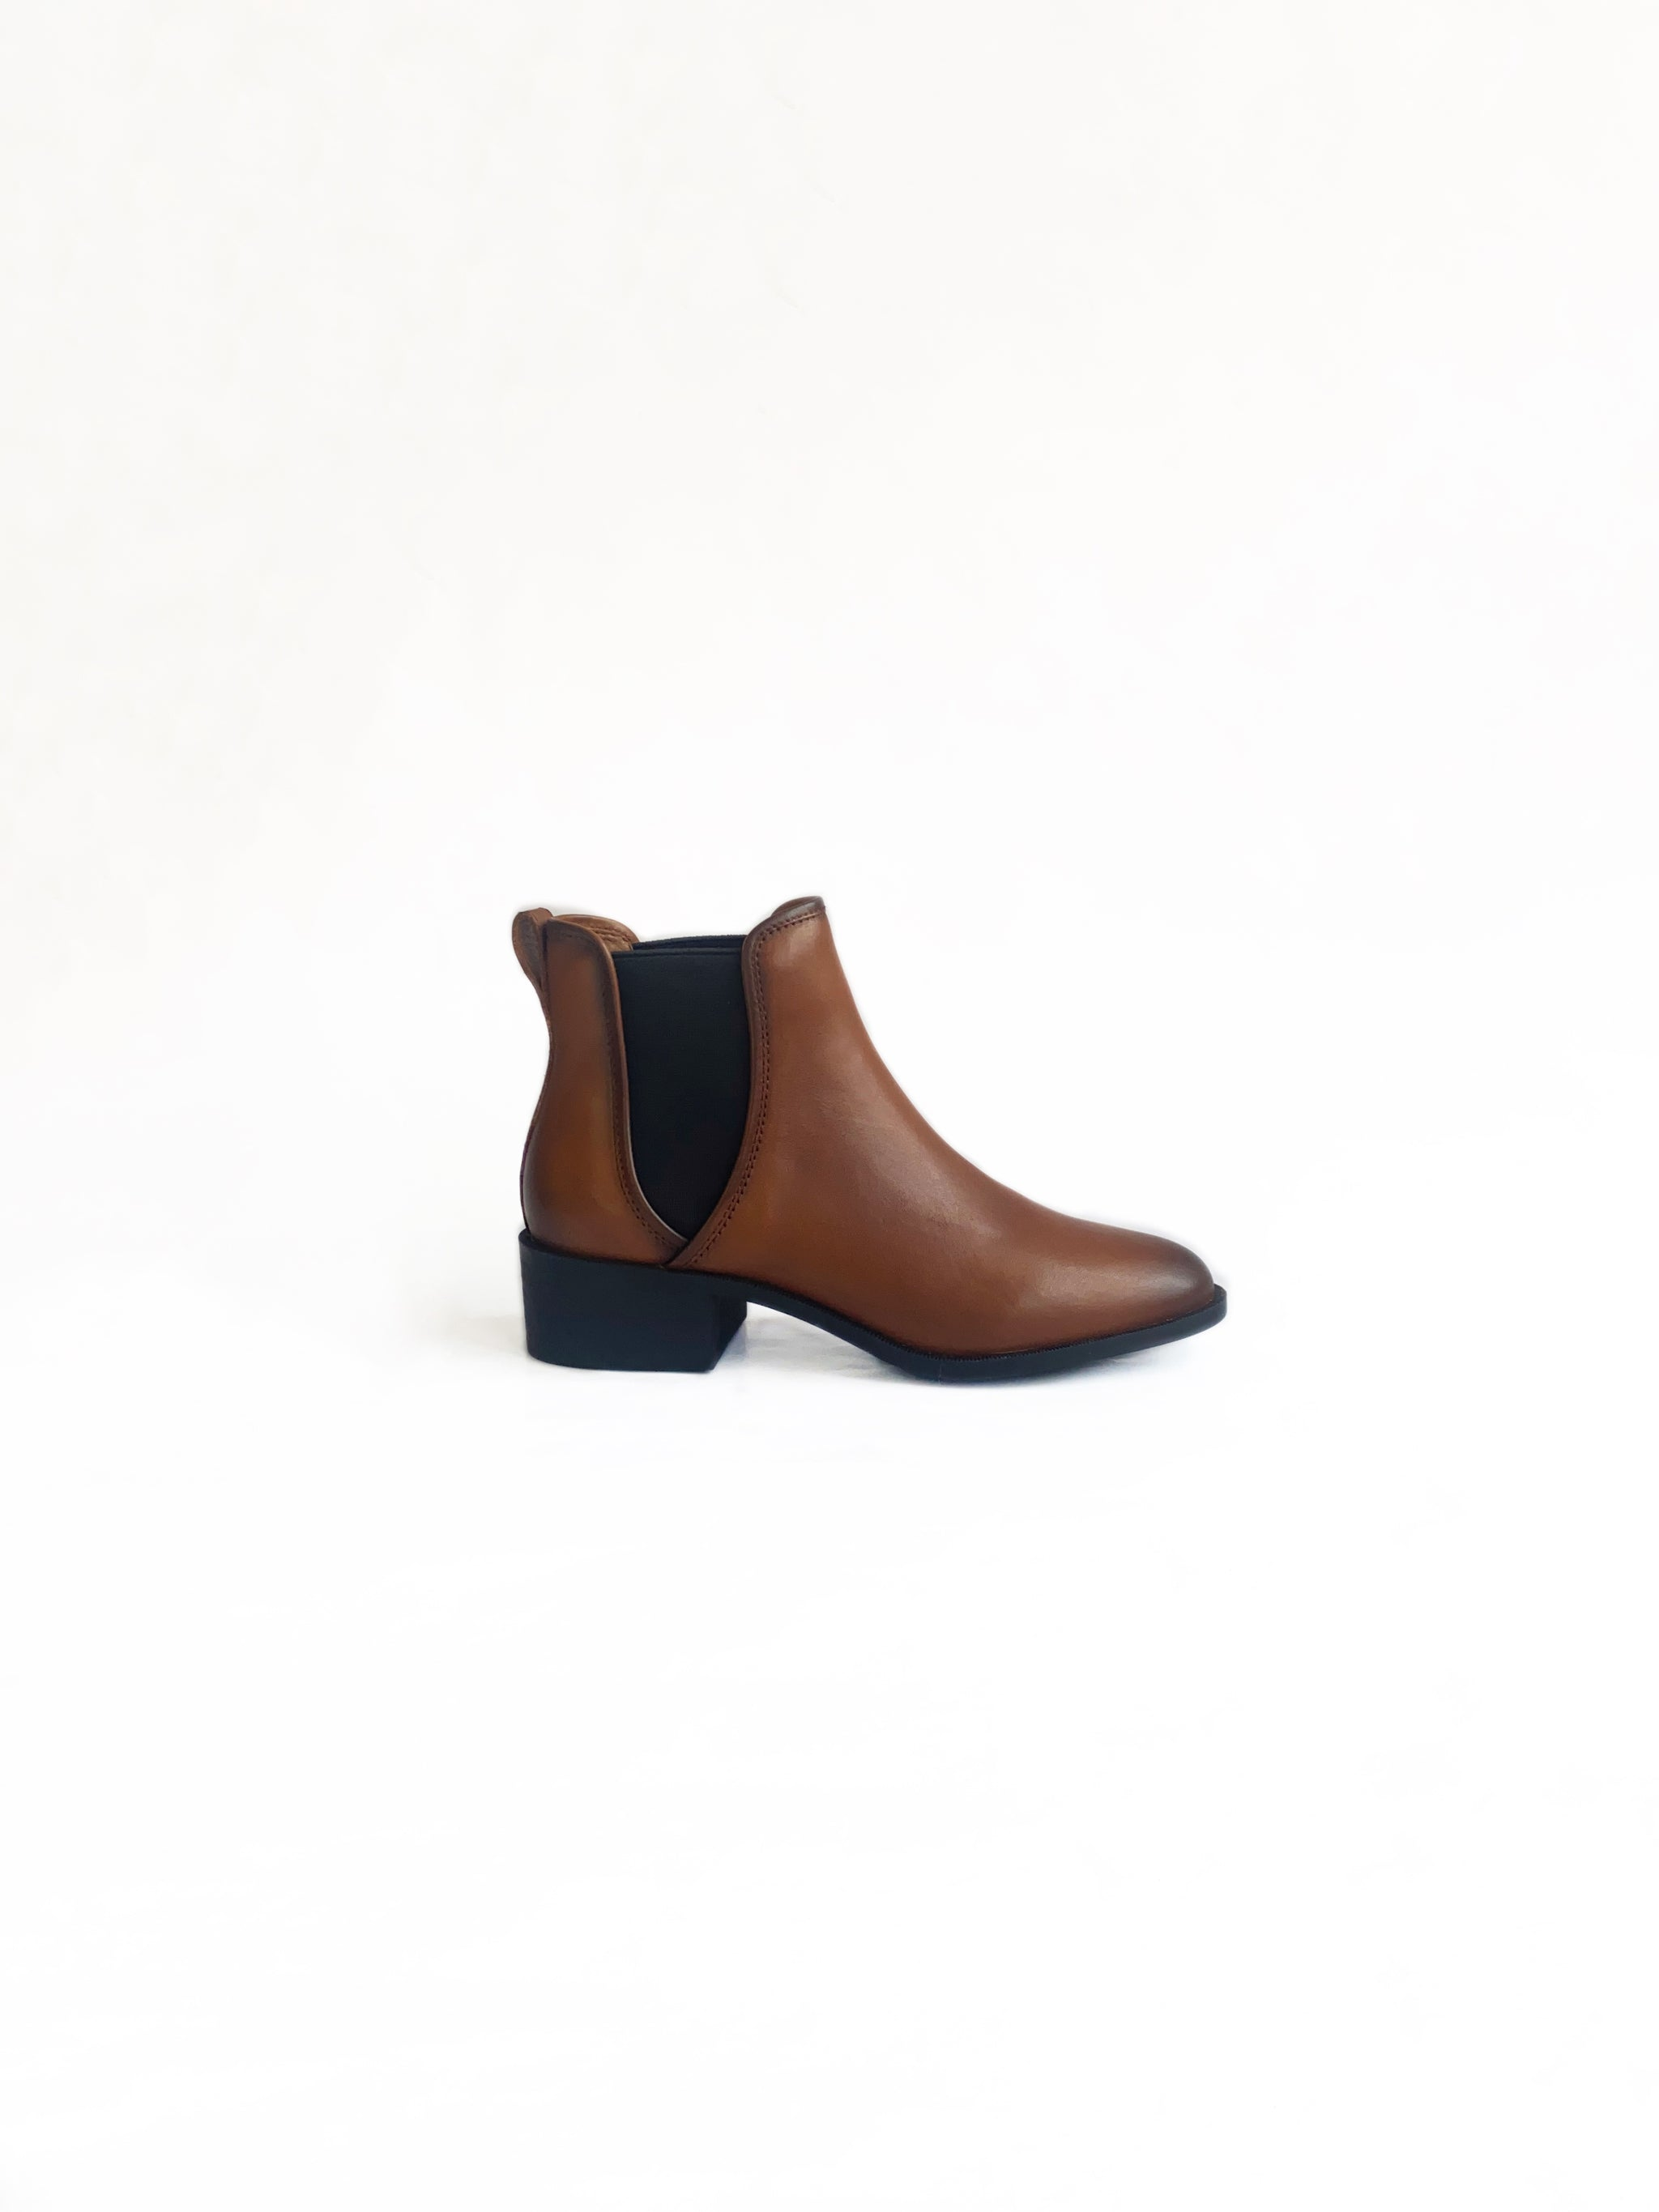 STEVE MADDEN - DARES IN BROWN